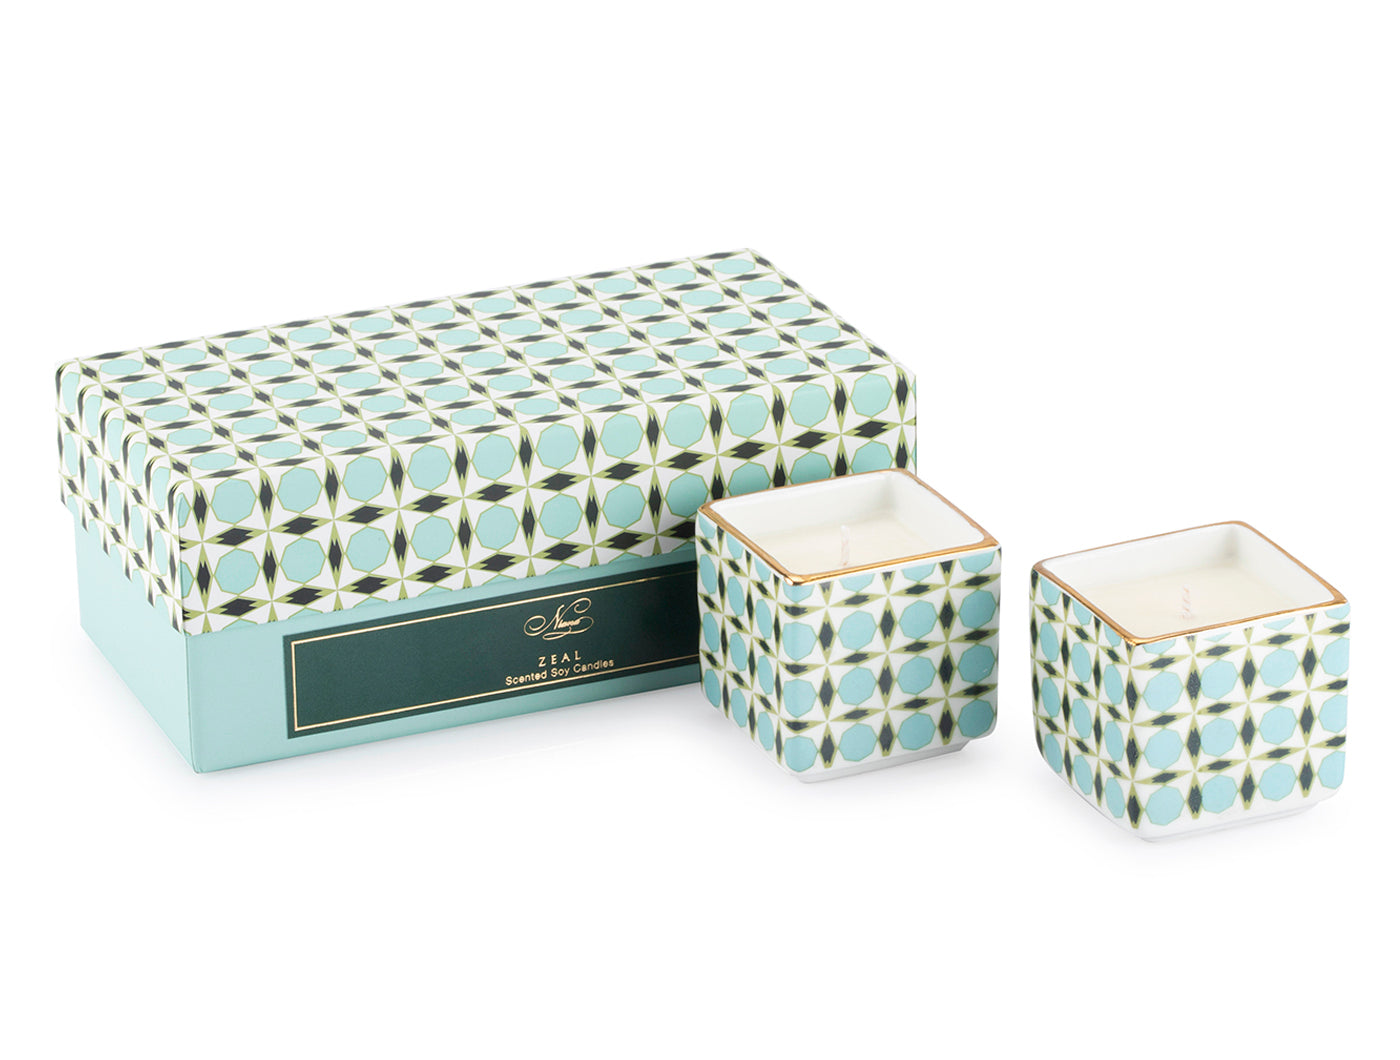 Niana Zeal Set of 2 Candles 60g Each